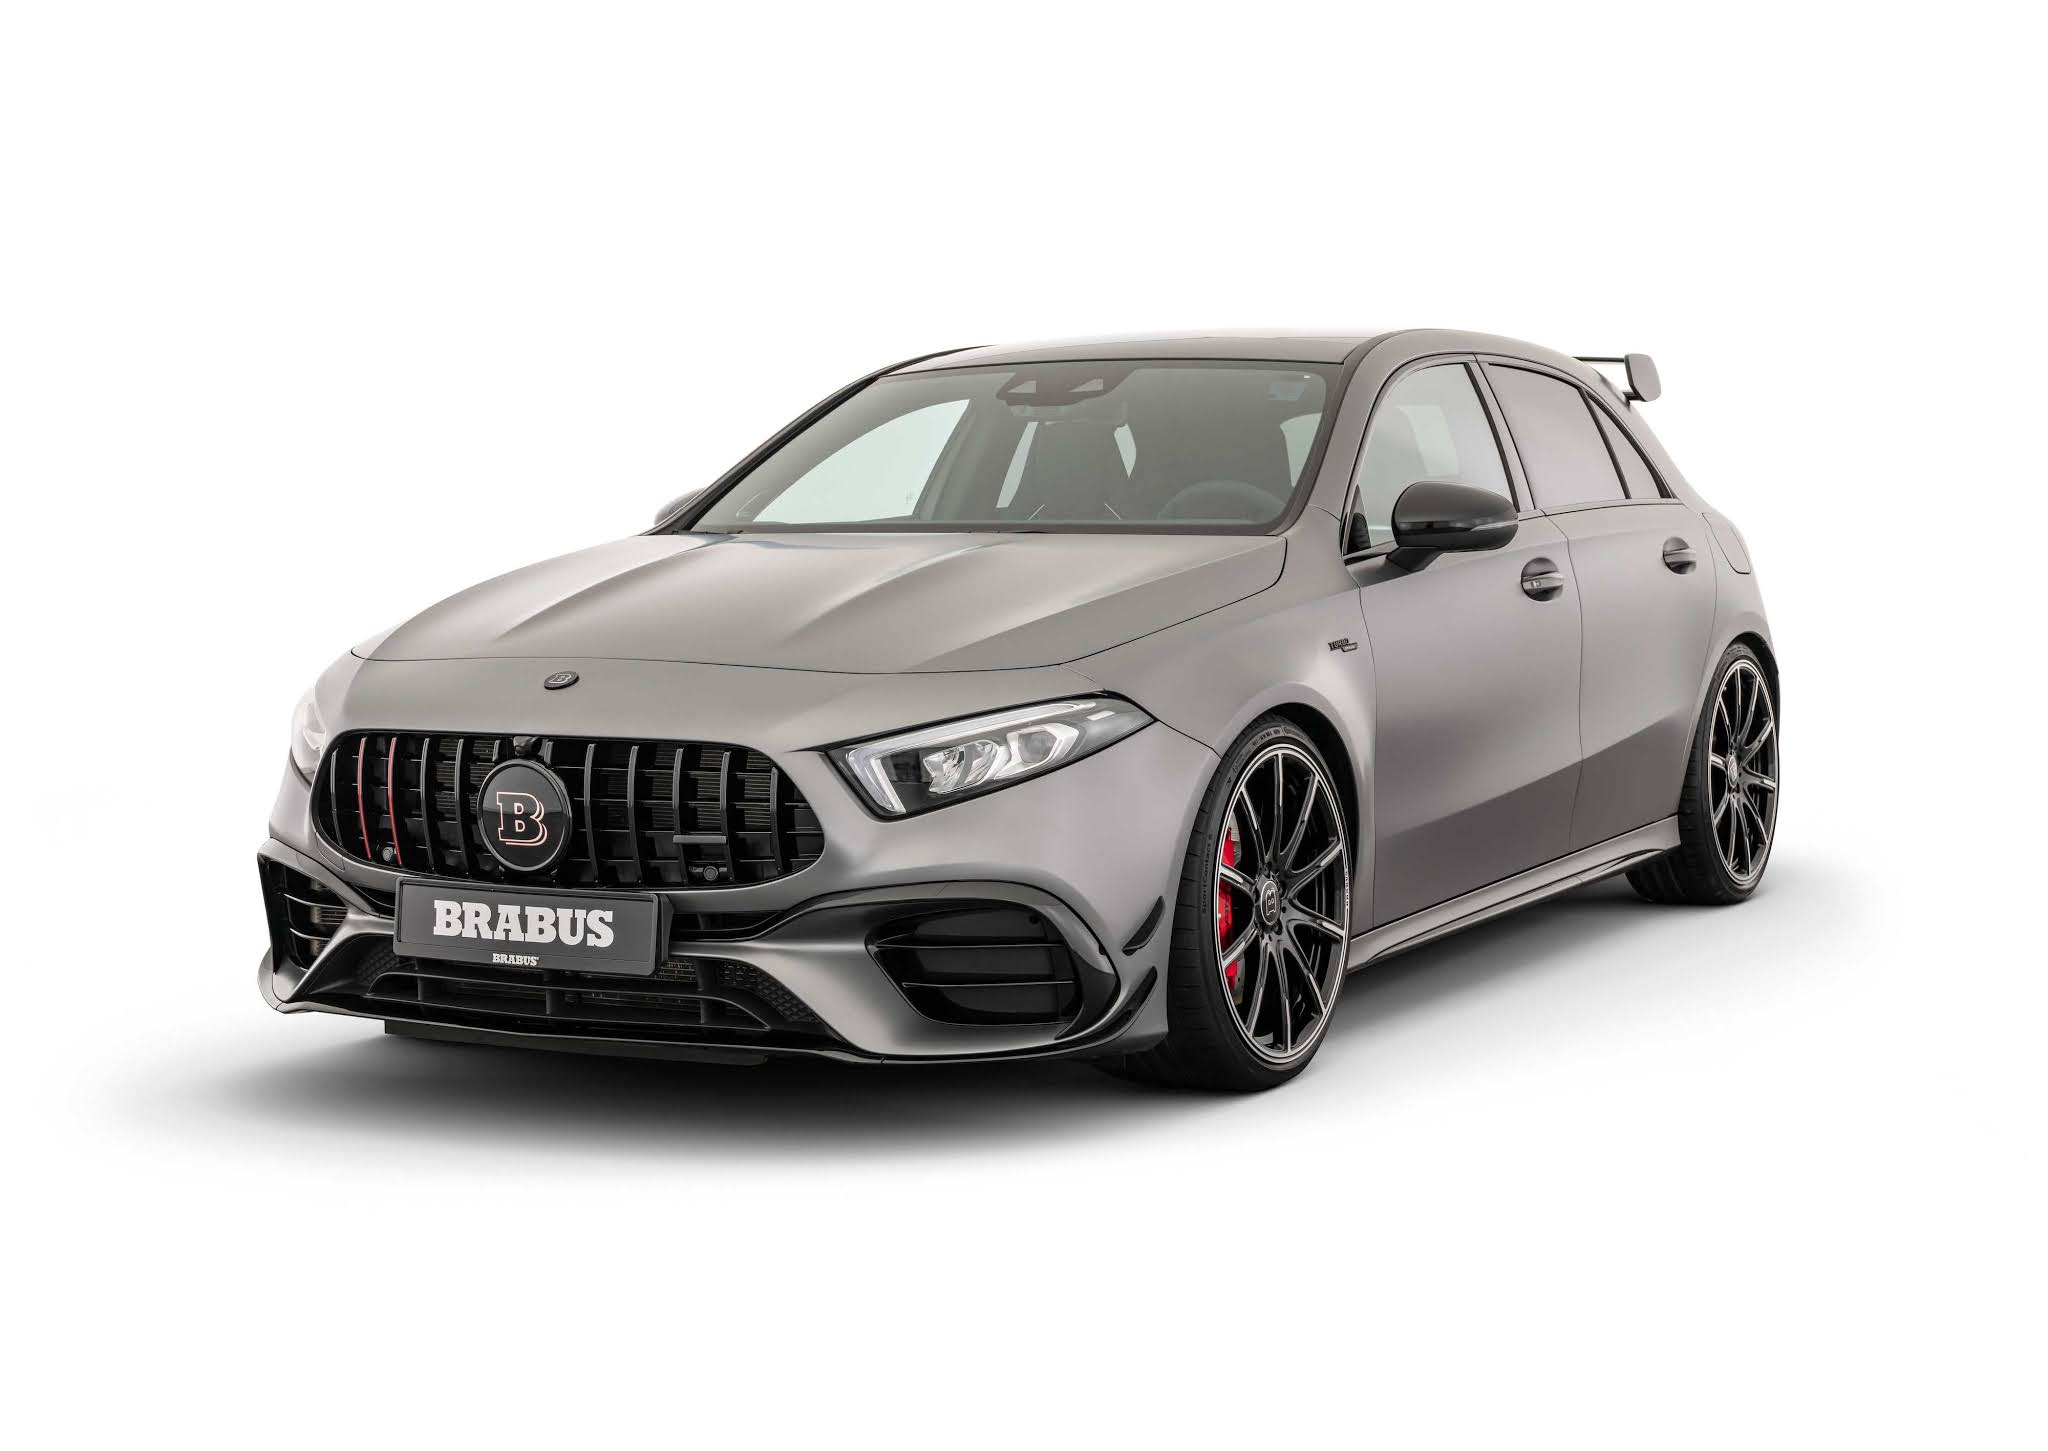 Tailor-made Brabus Mercedes-AMG